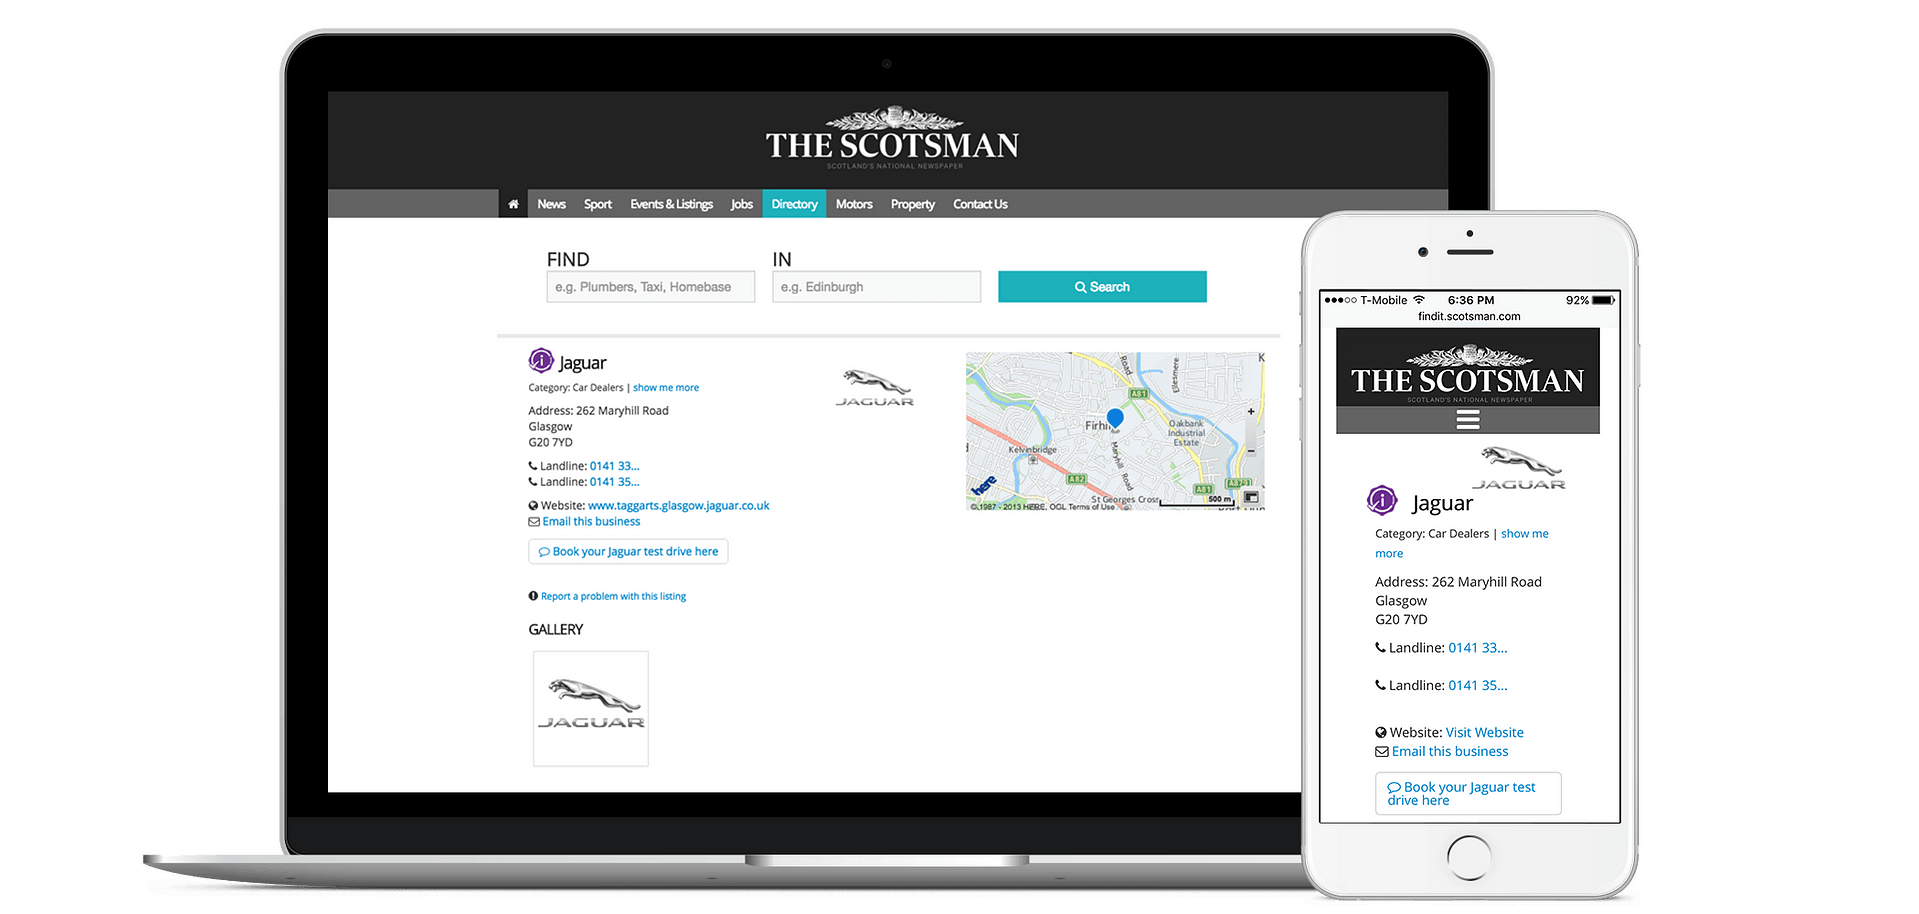 Add Your Business to The Scotsman